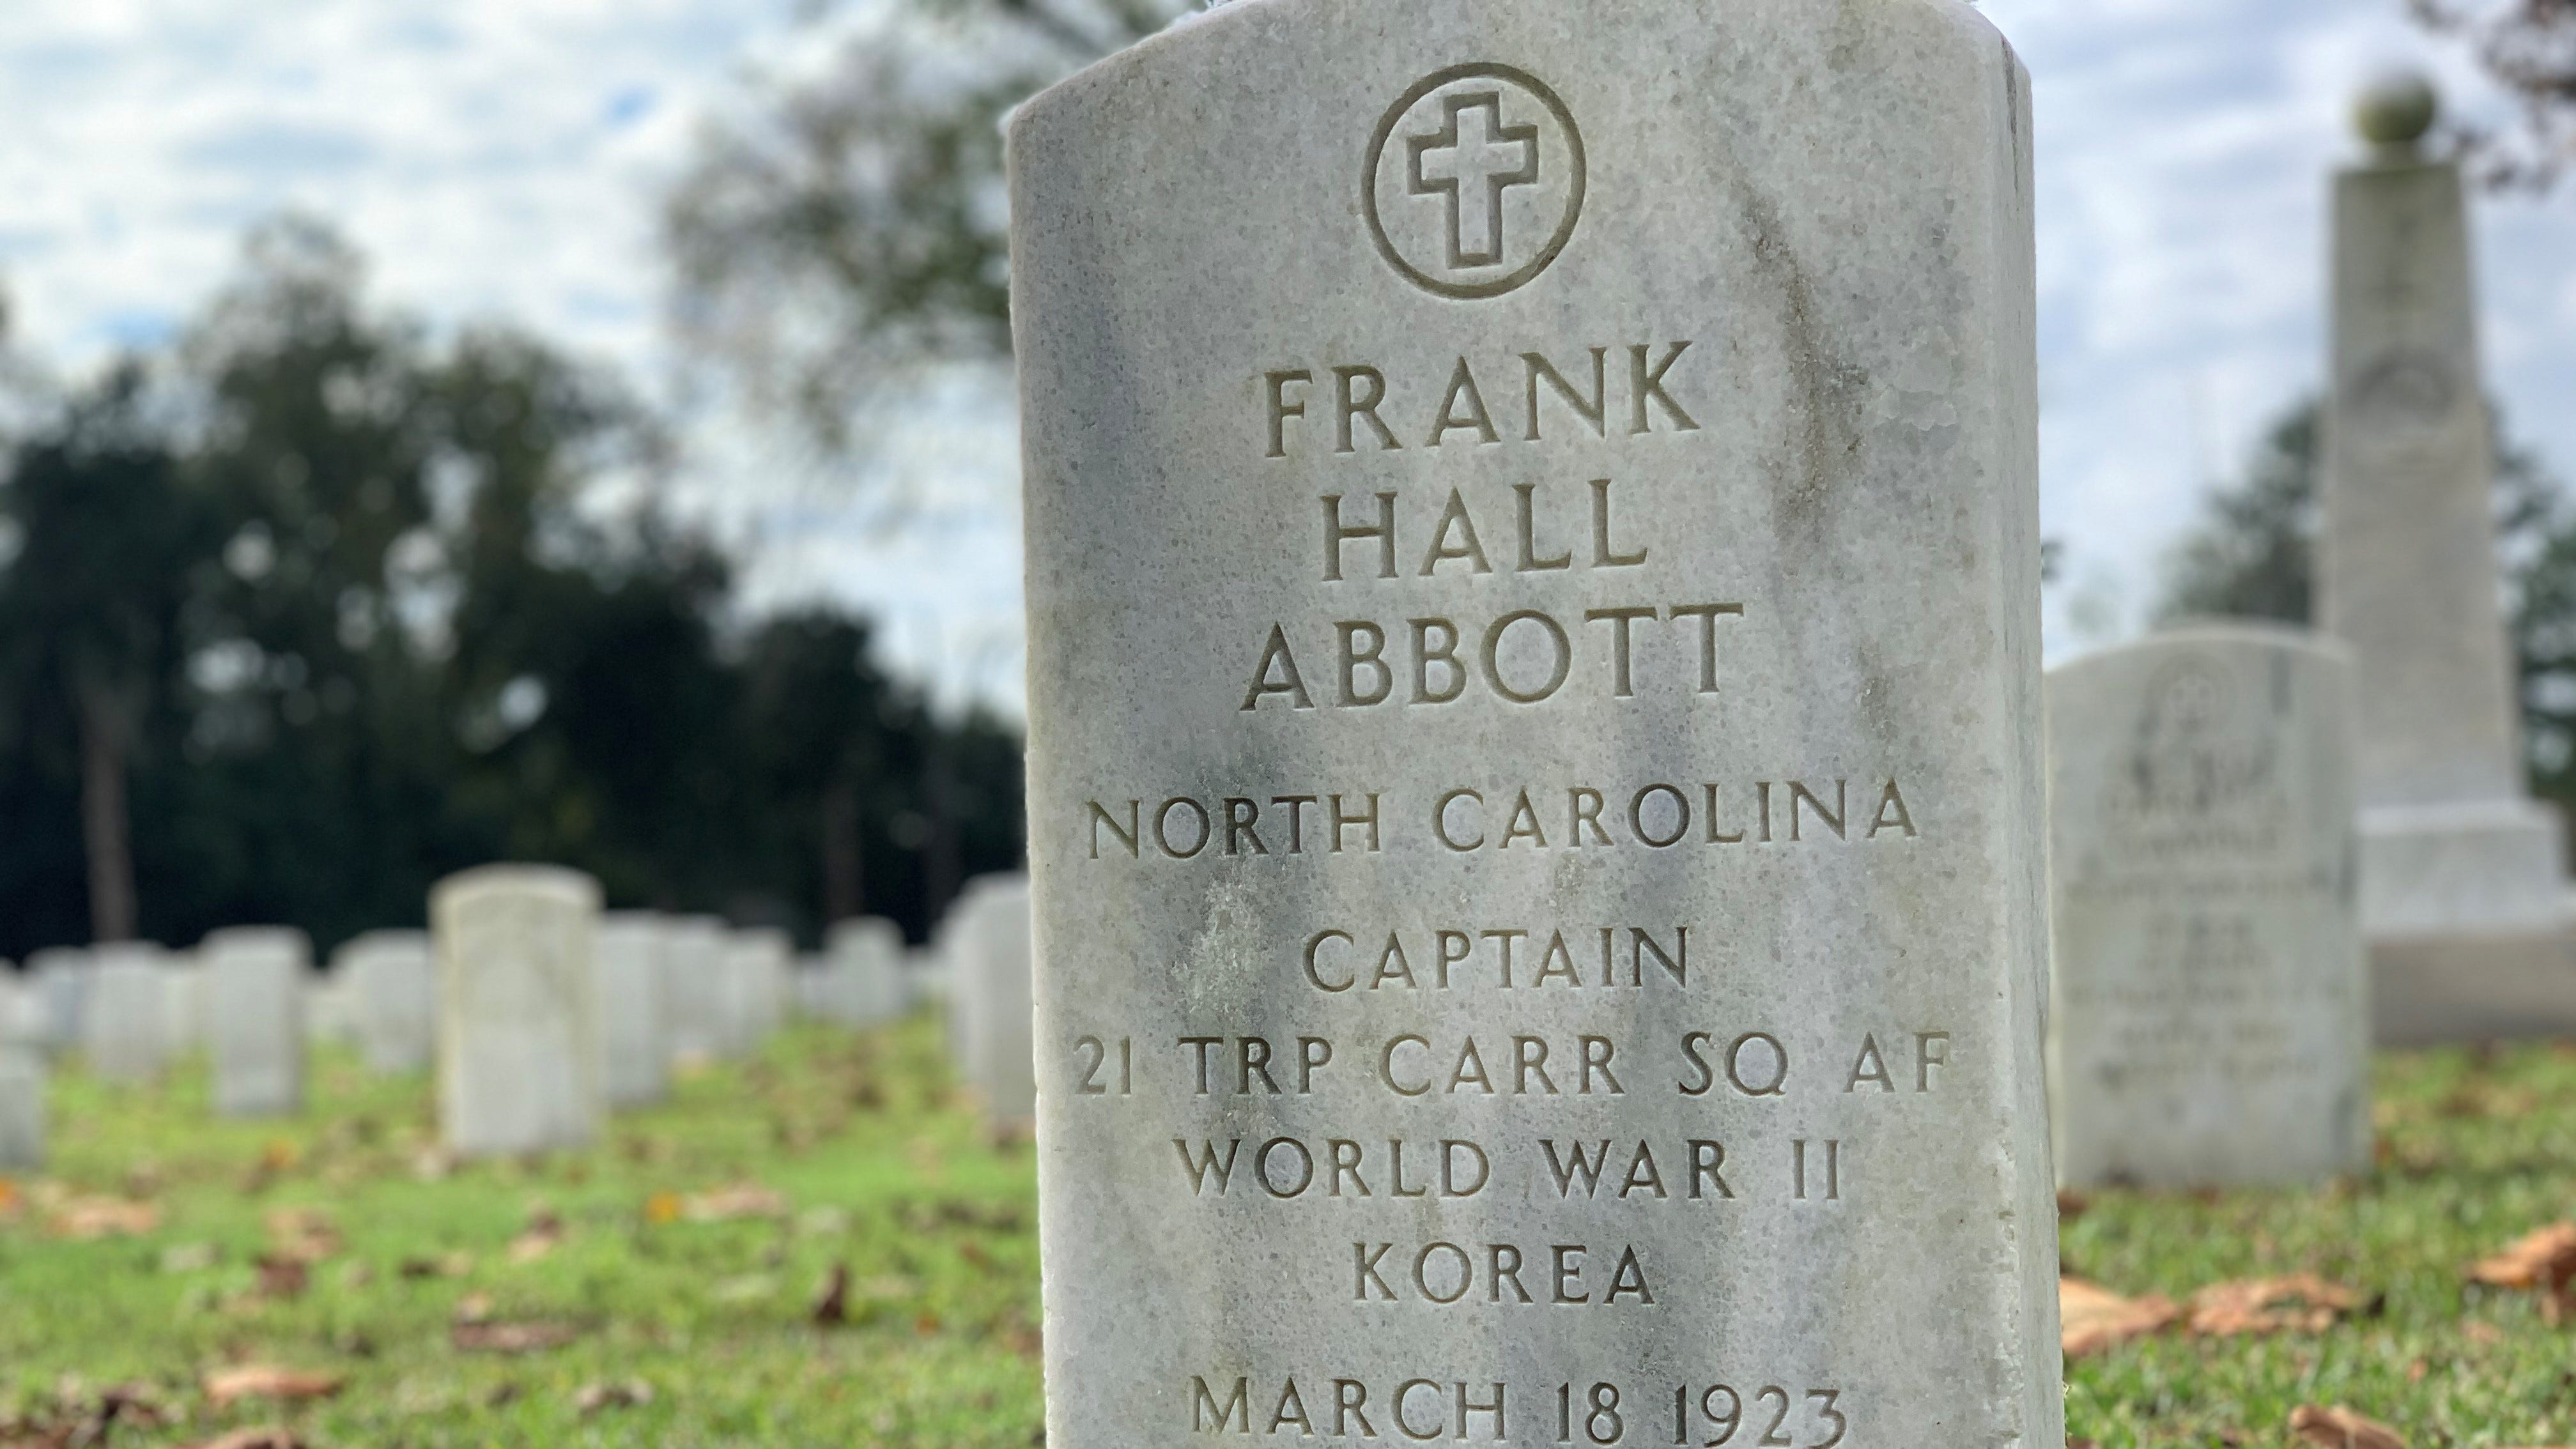 Captain Frank Hall Abbott, the pilot of the Marshall University football plane crash on Nov. 14, 1970, is interred in Section 11, Grave 7512 at the New Bern National Cemetery.